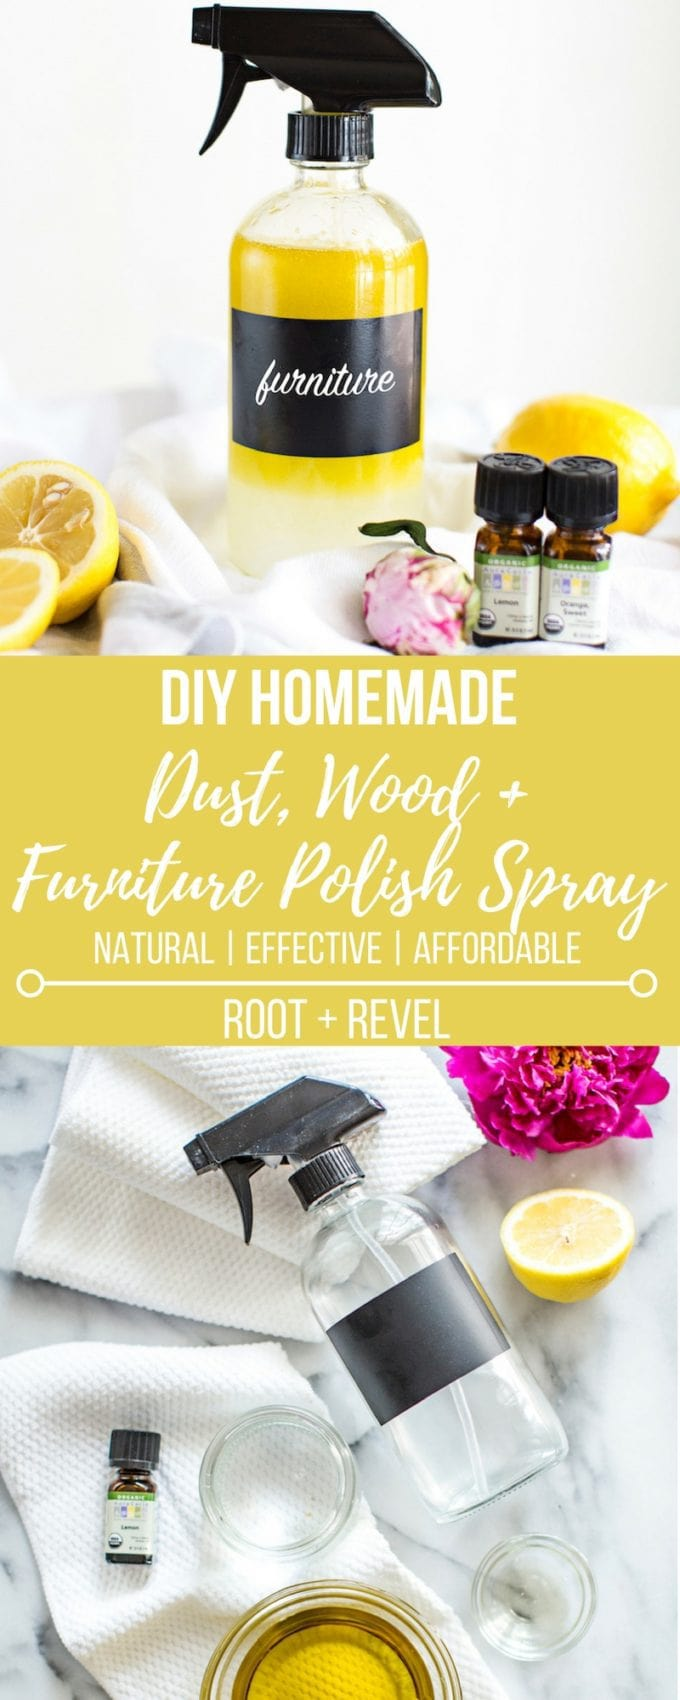 This DIY homemade dust, wood + furniture polish spray is a safe, affordable and natural cleaning alternative to toxic store-bought cleaners. Use with a microfiber cloth to polish and clean wood, furniture and remove dust.